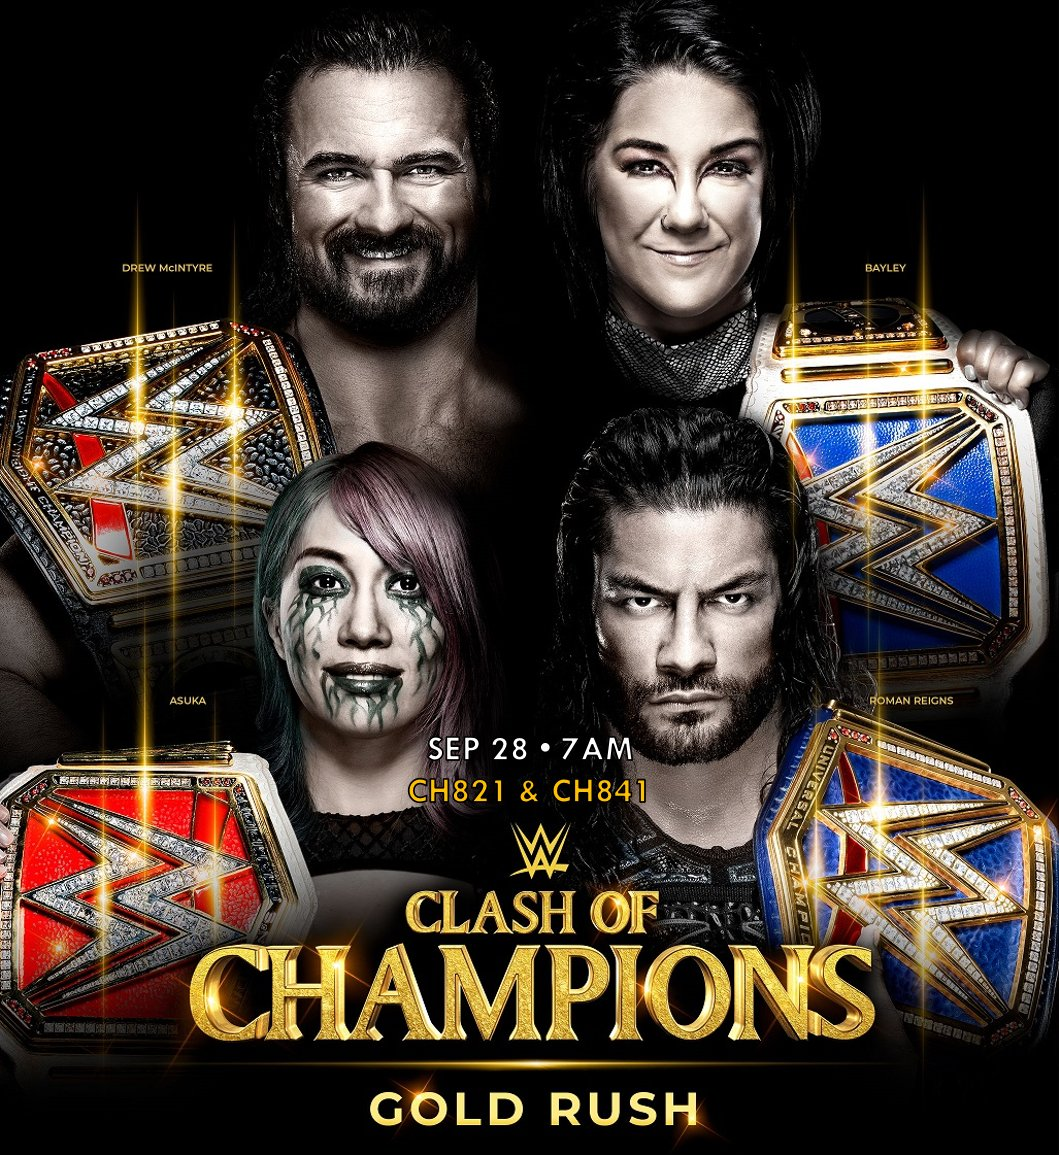 All @WWESEAsia championships across the Raw and SmackDown brands will be put on the line! #ClashOfChampions  Subscribe to #WWENetwork via CH200 today. https://t.co/vu5EBvQUDF